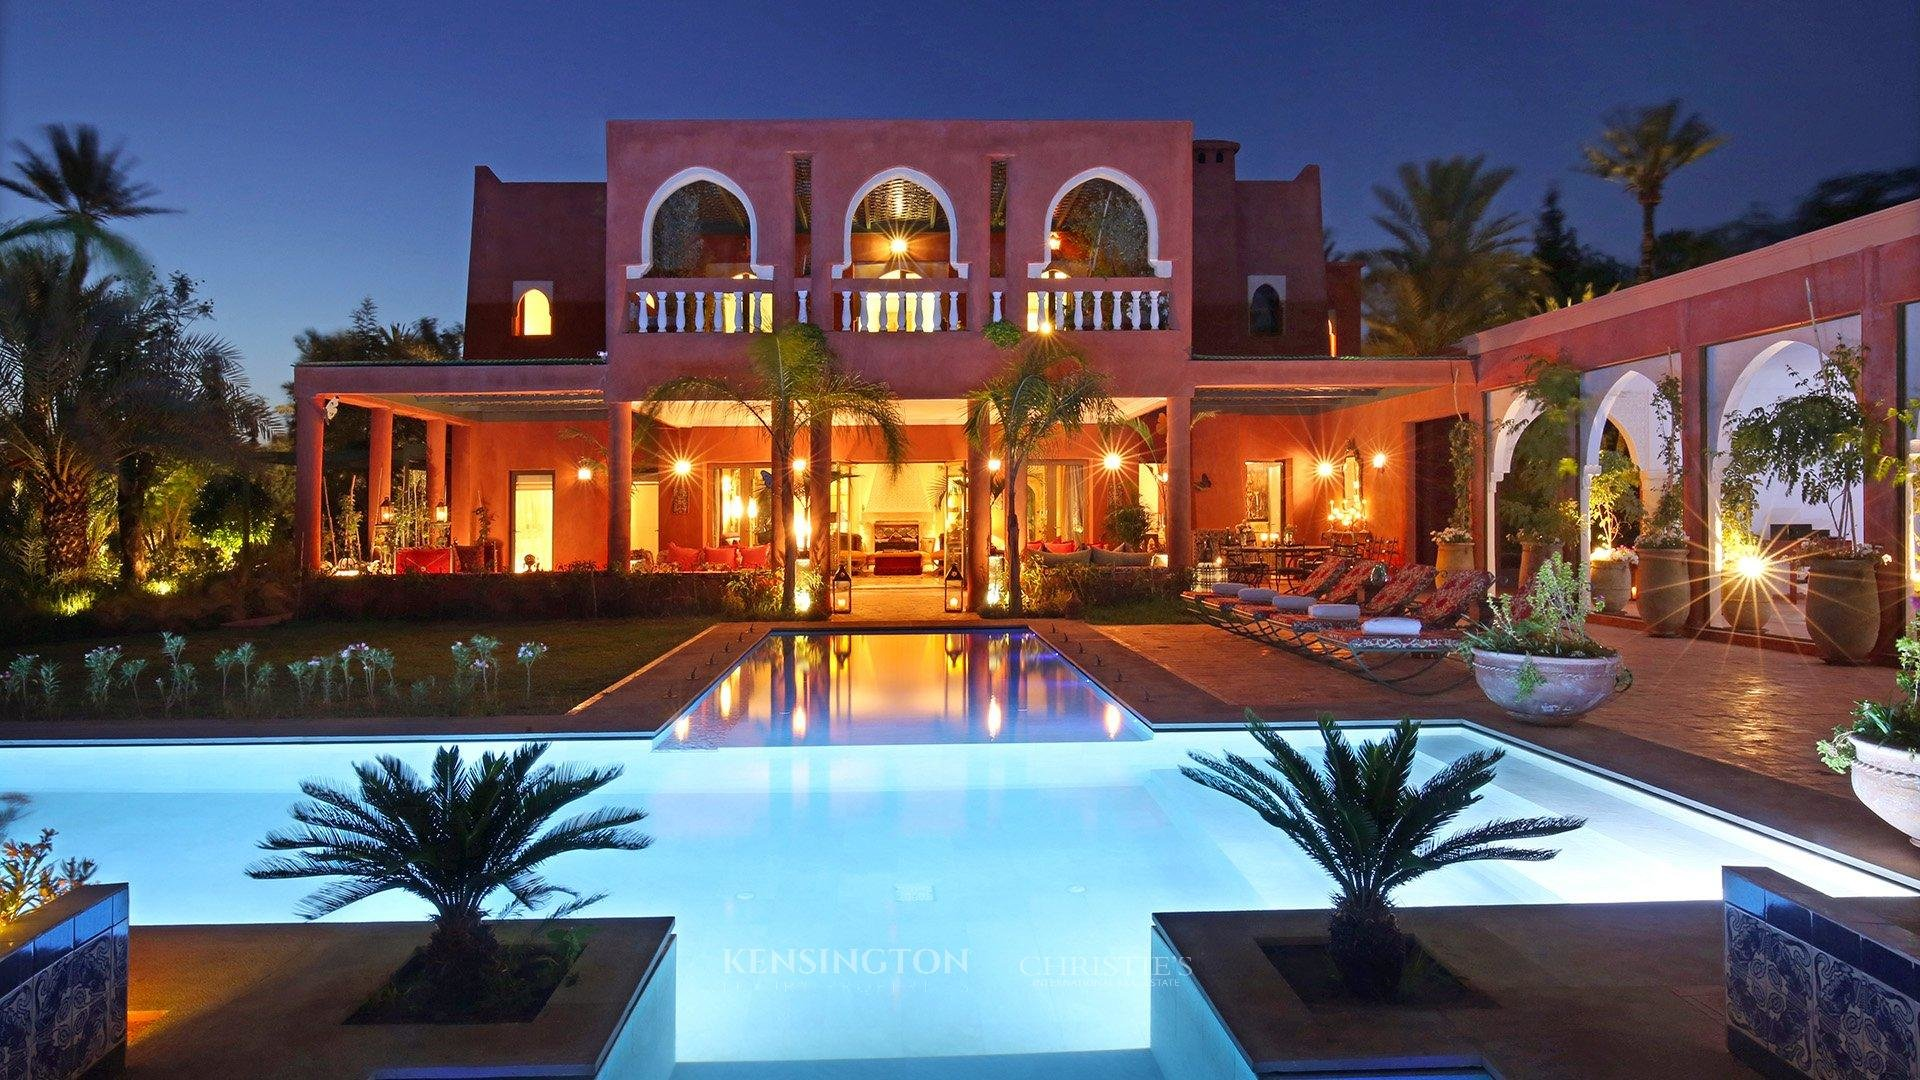 KPPM00835: Villa Happy Luxury Villa Marrakech Morocco ...